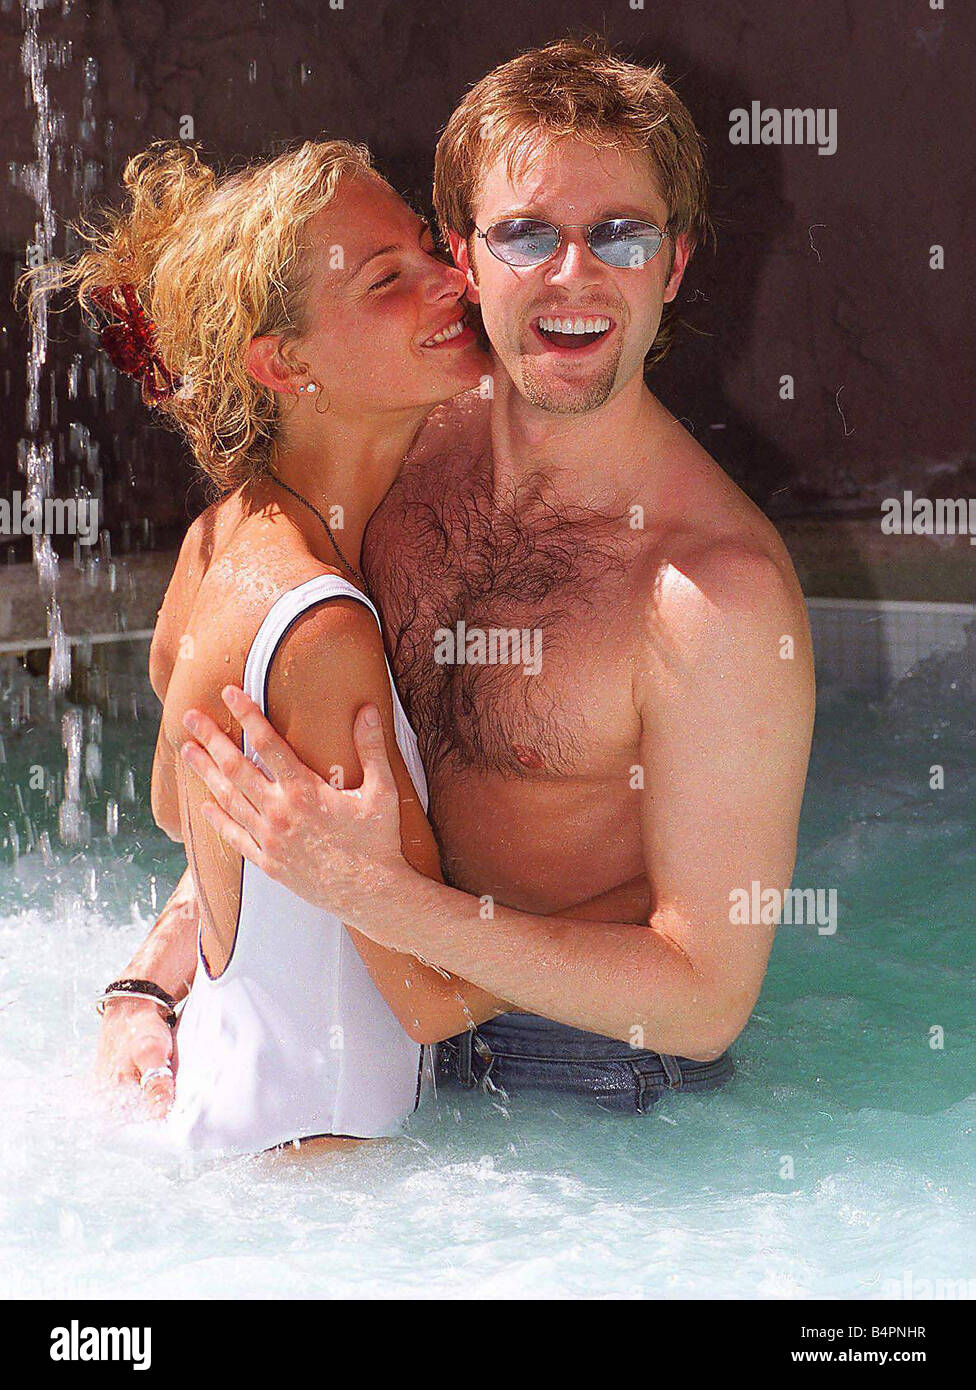 Darren Day and Tracey Shaw frolic in the pool in Las Vegas - Stock Image